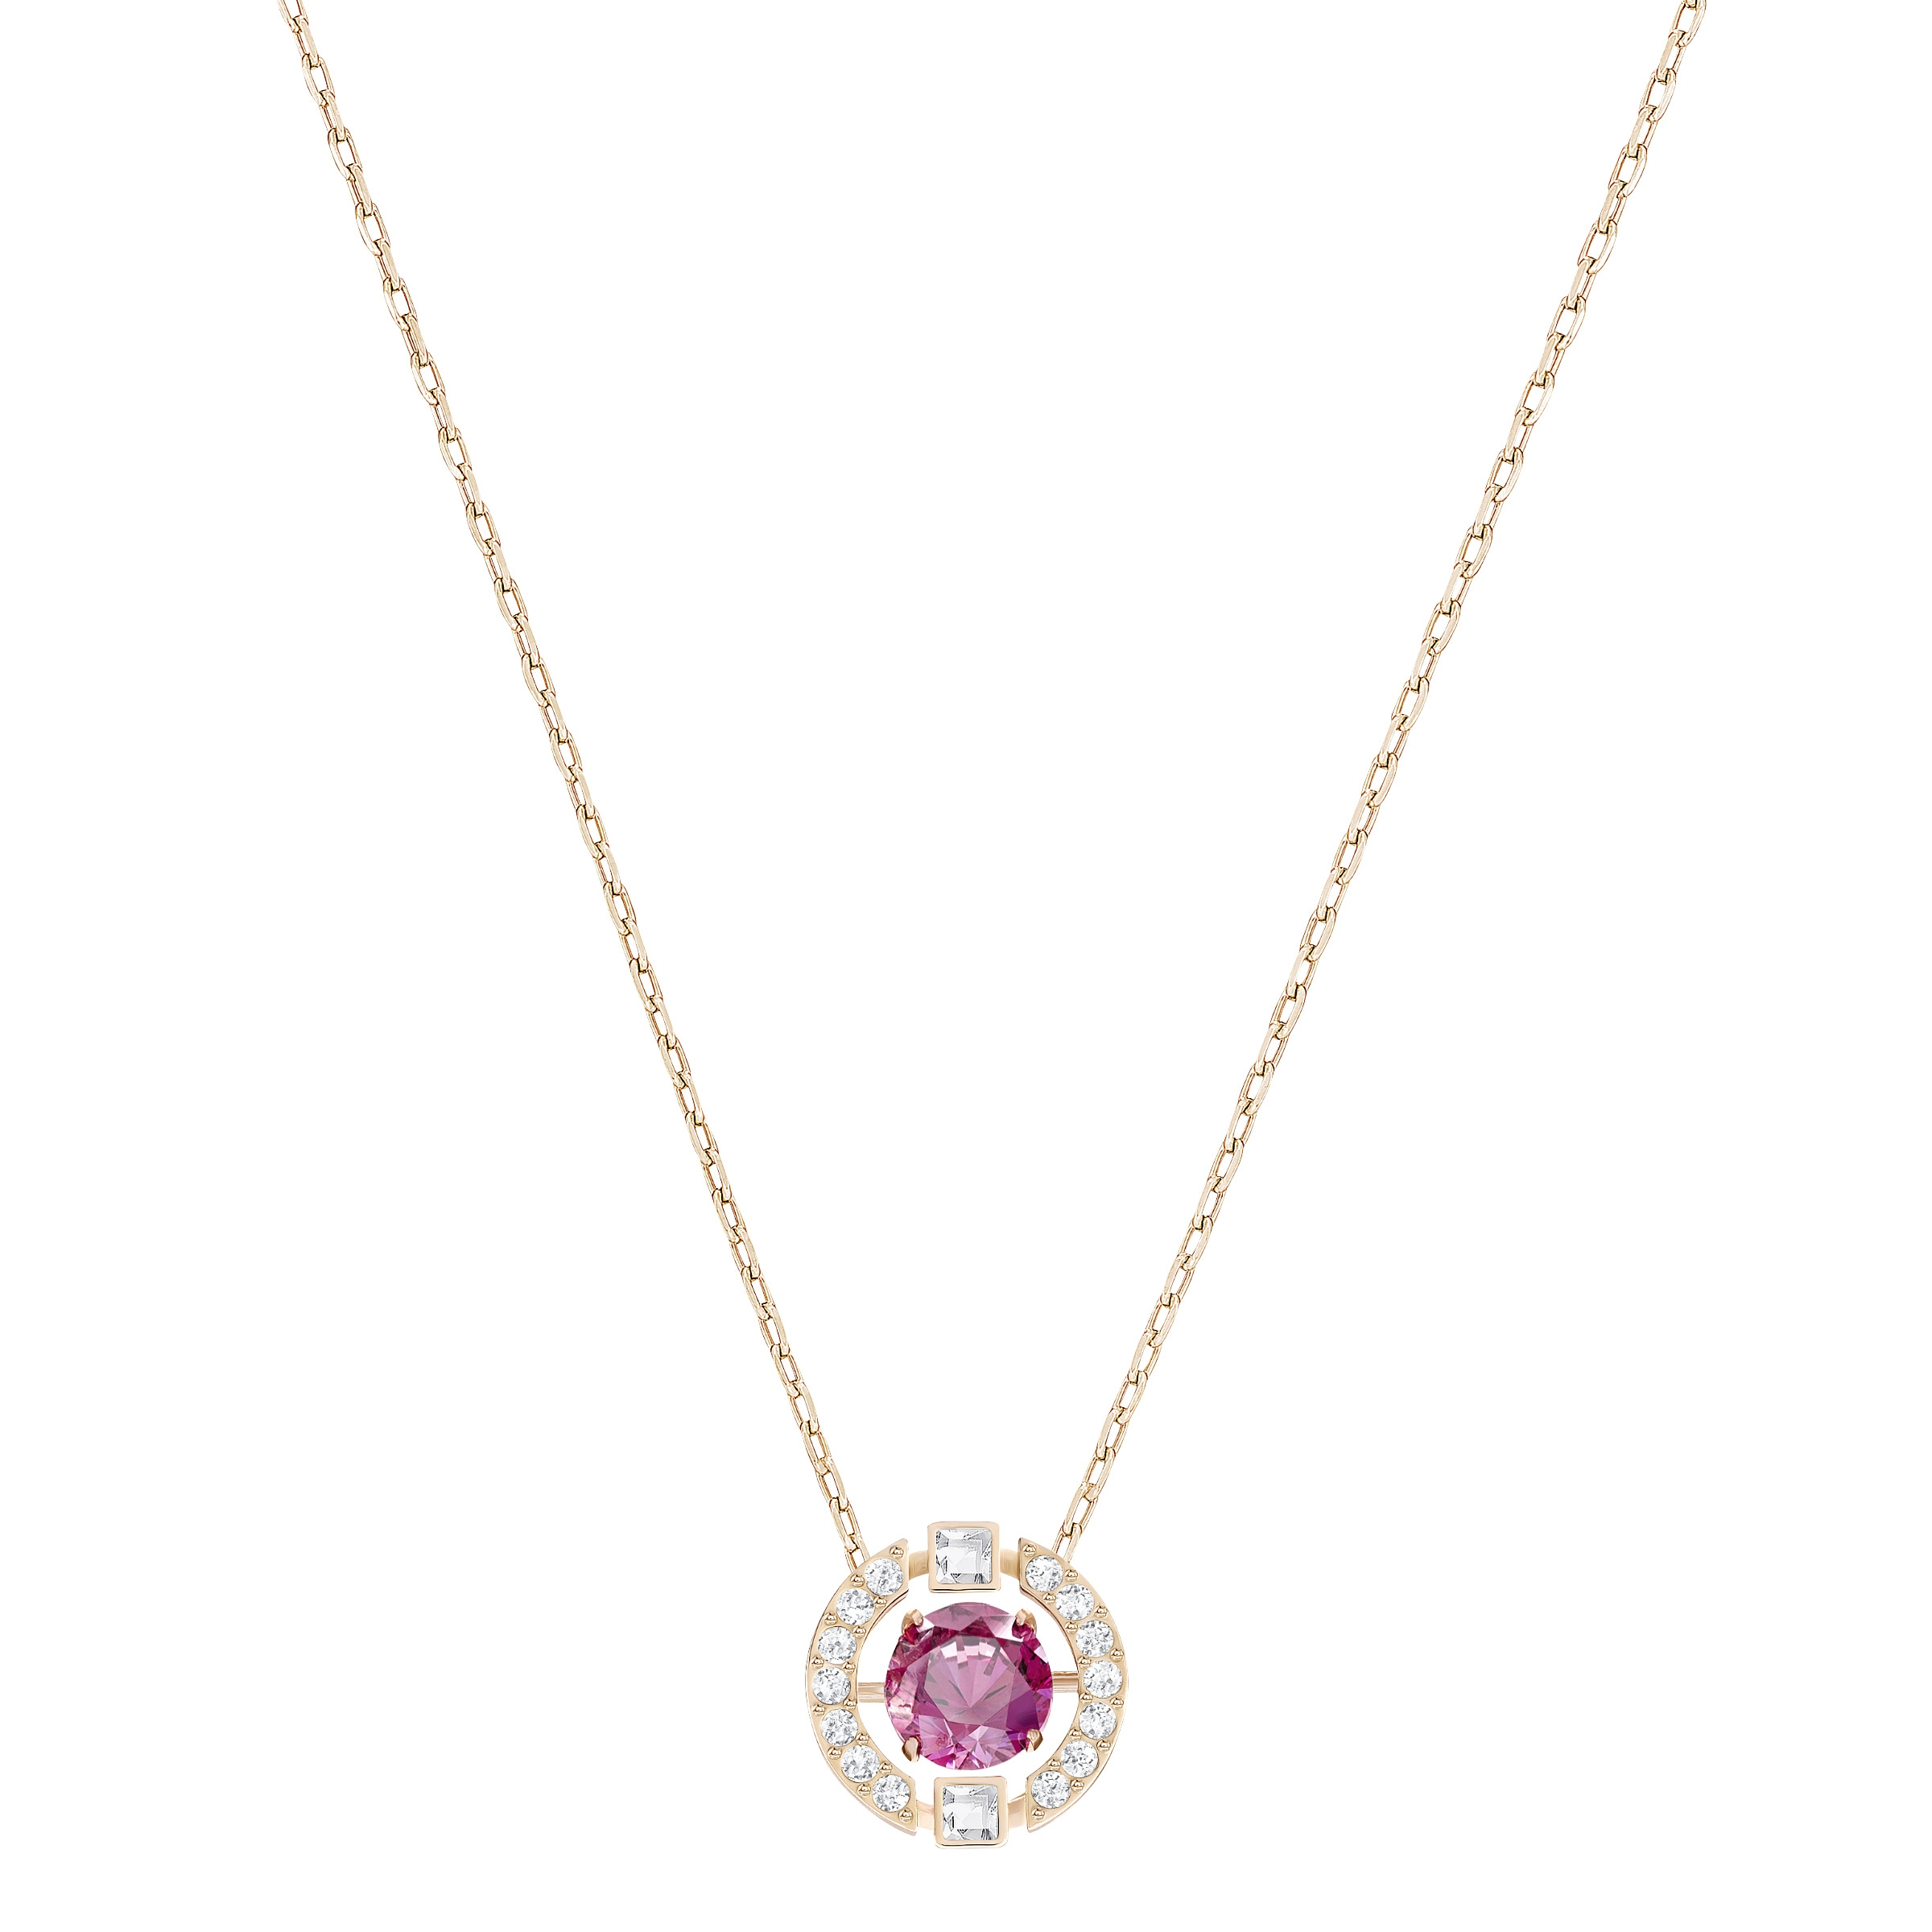 Details About Swarovski Sparkling Dance Round Necklace, Red 5279421 Inside Most Current Sparkling Lioness Heart Pendant Necklaces (View 12 of 25)